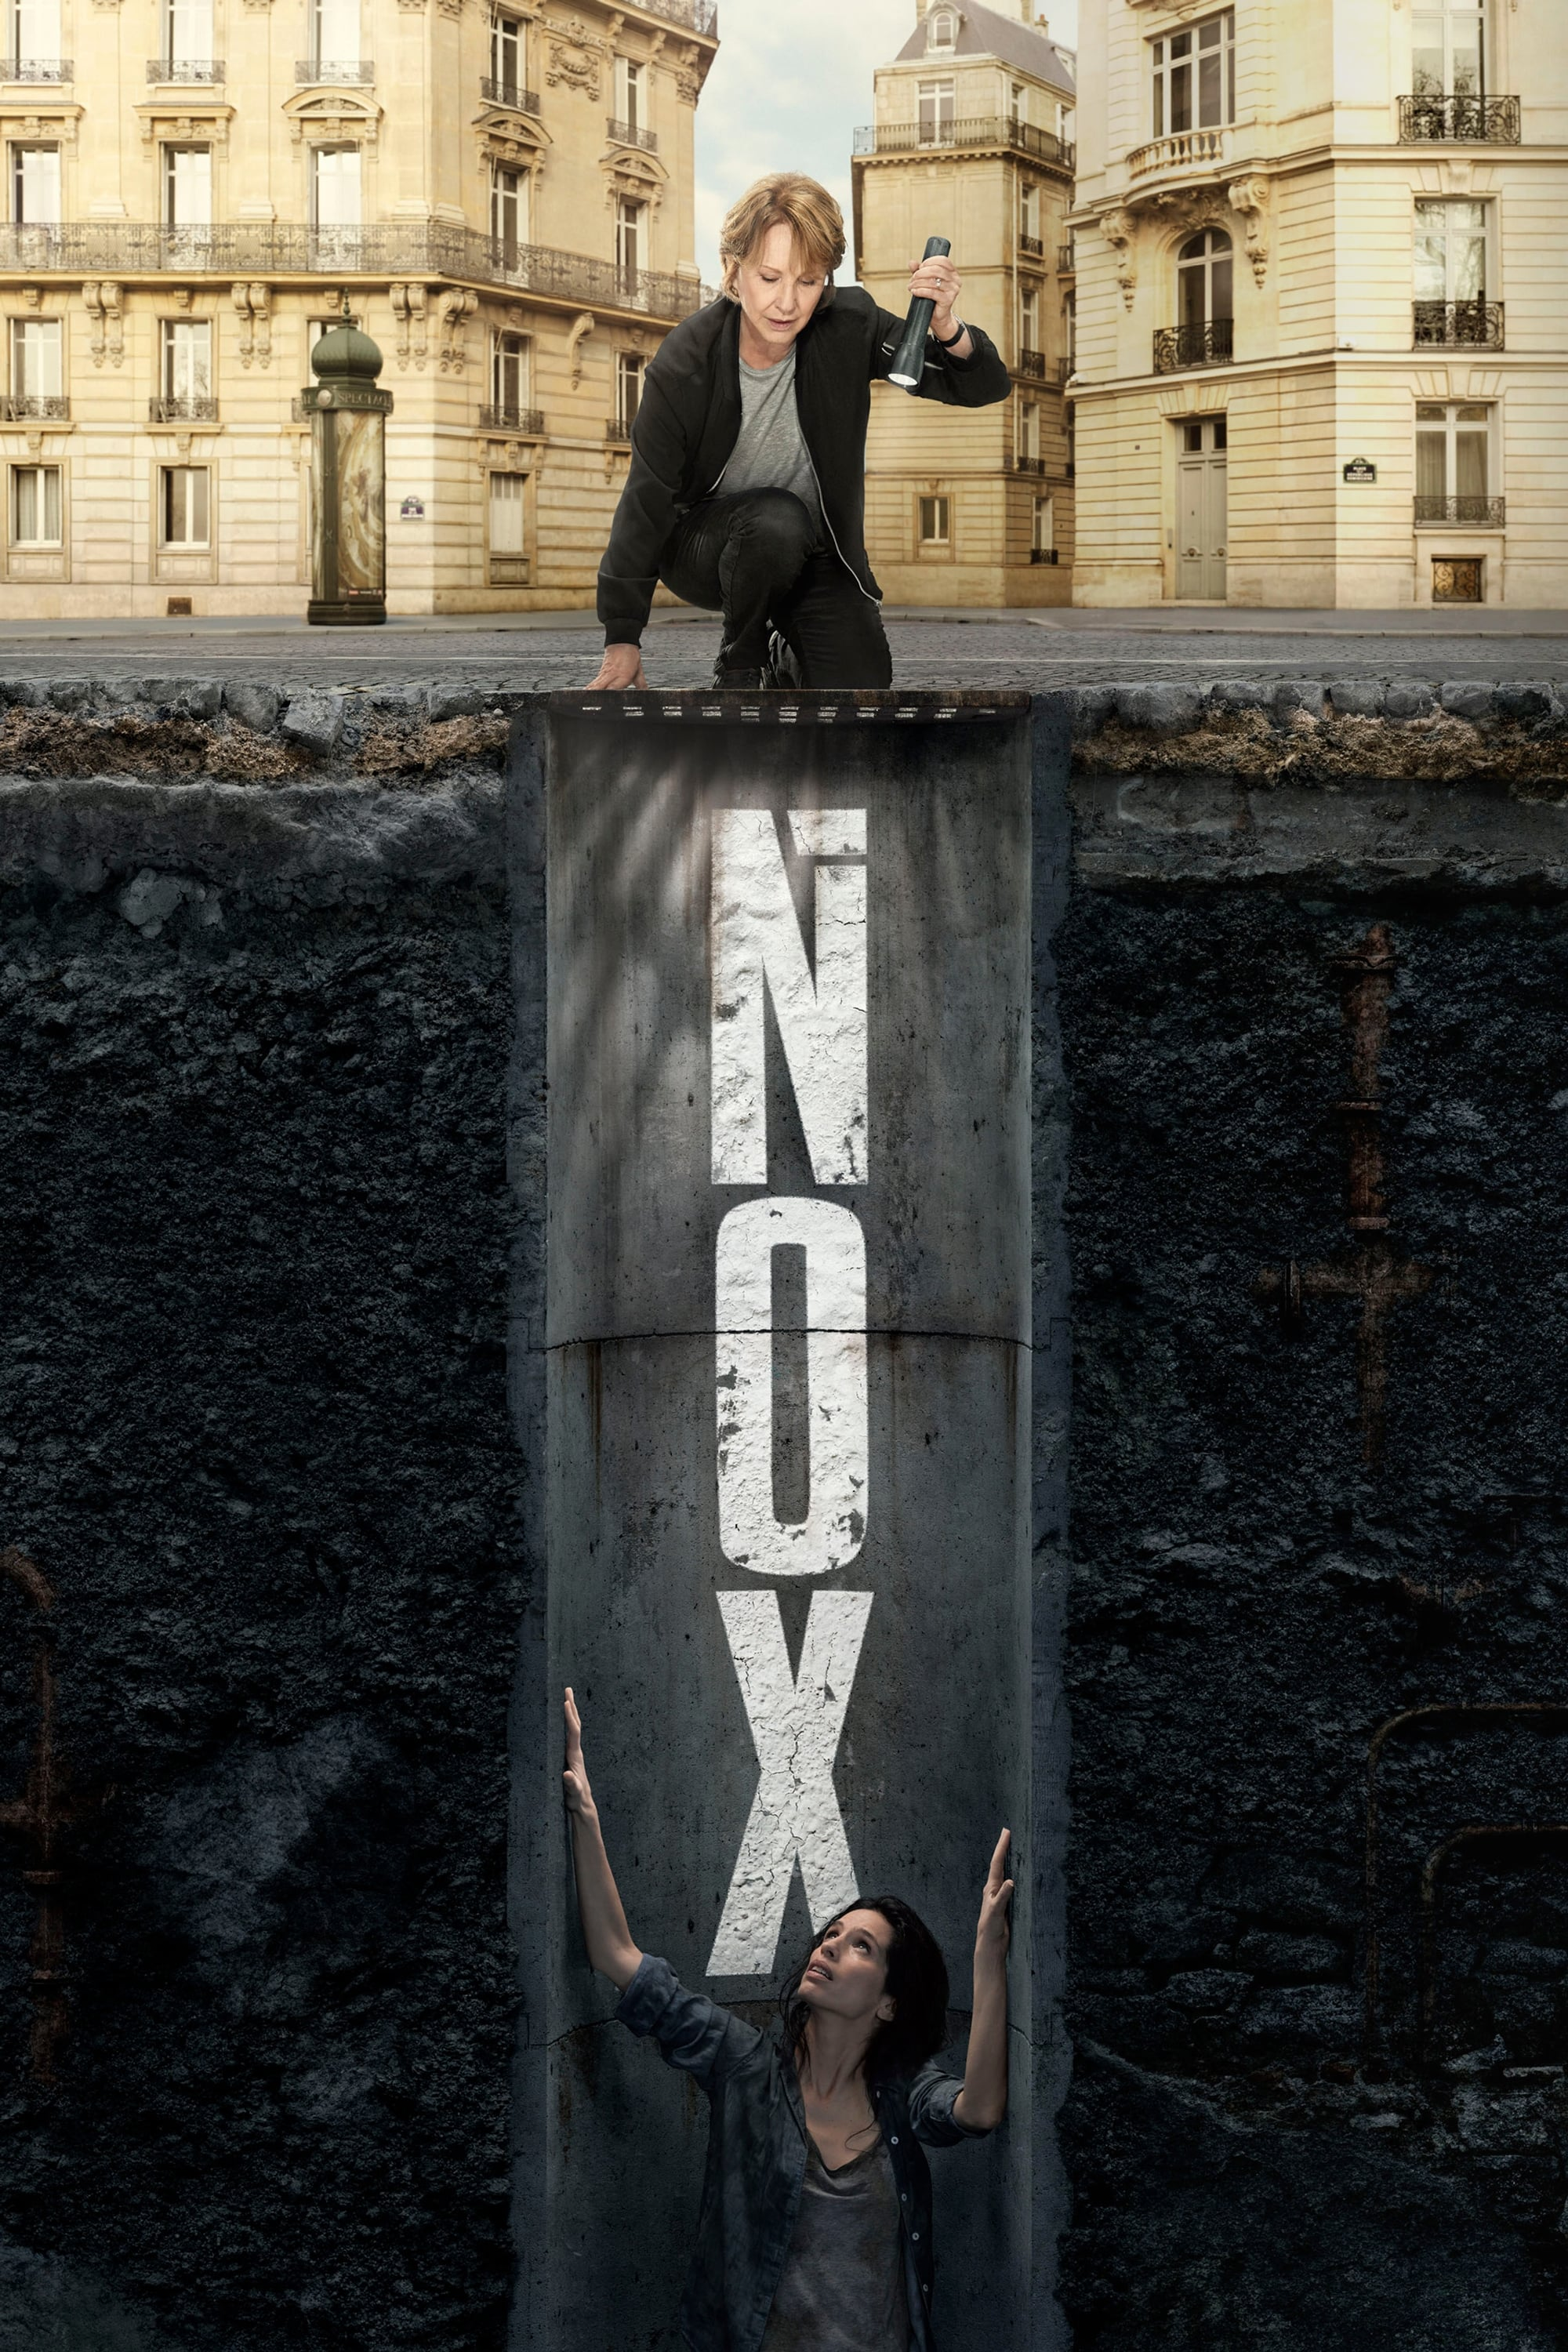 Nox TV Shows About Police Detective